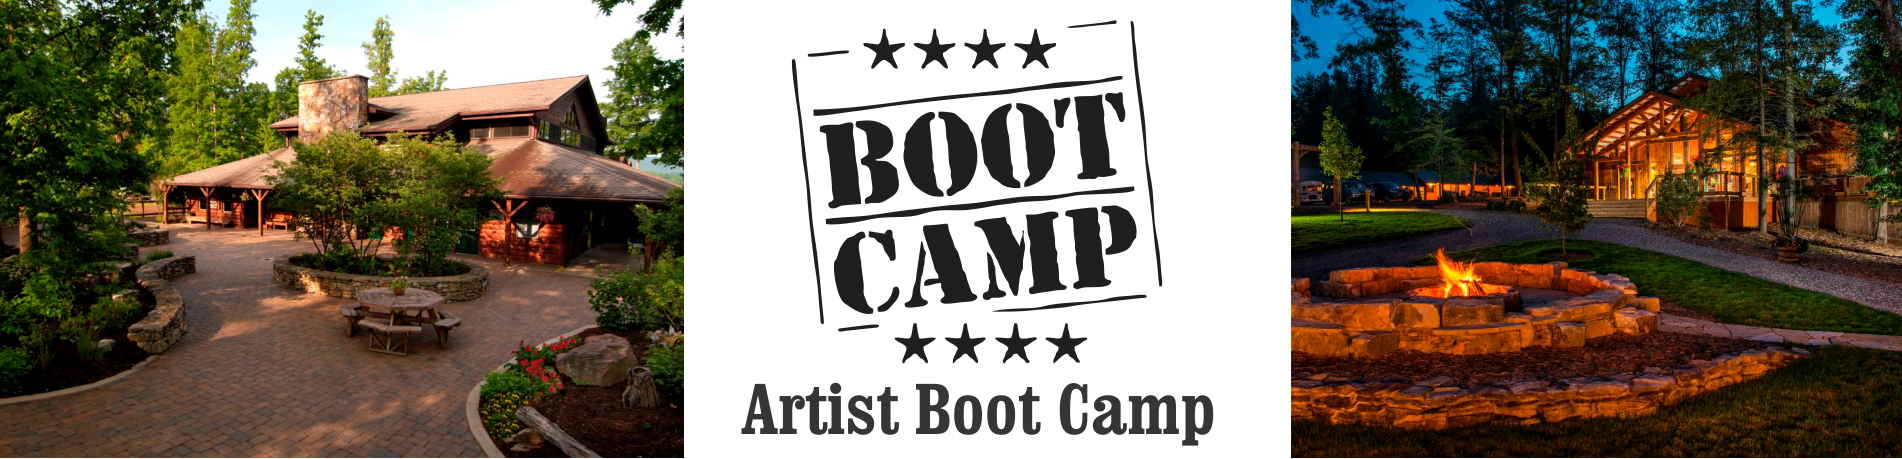 Boot Camp Art logo